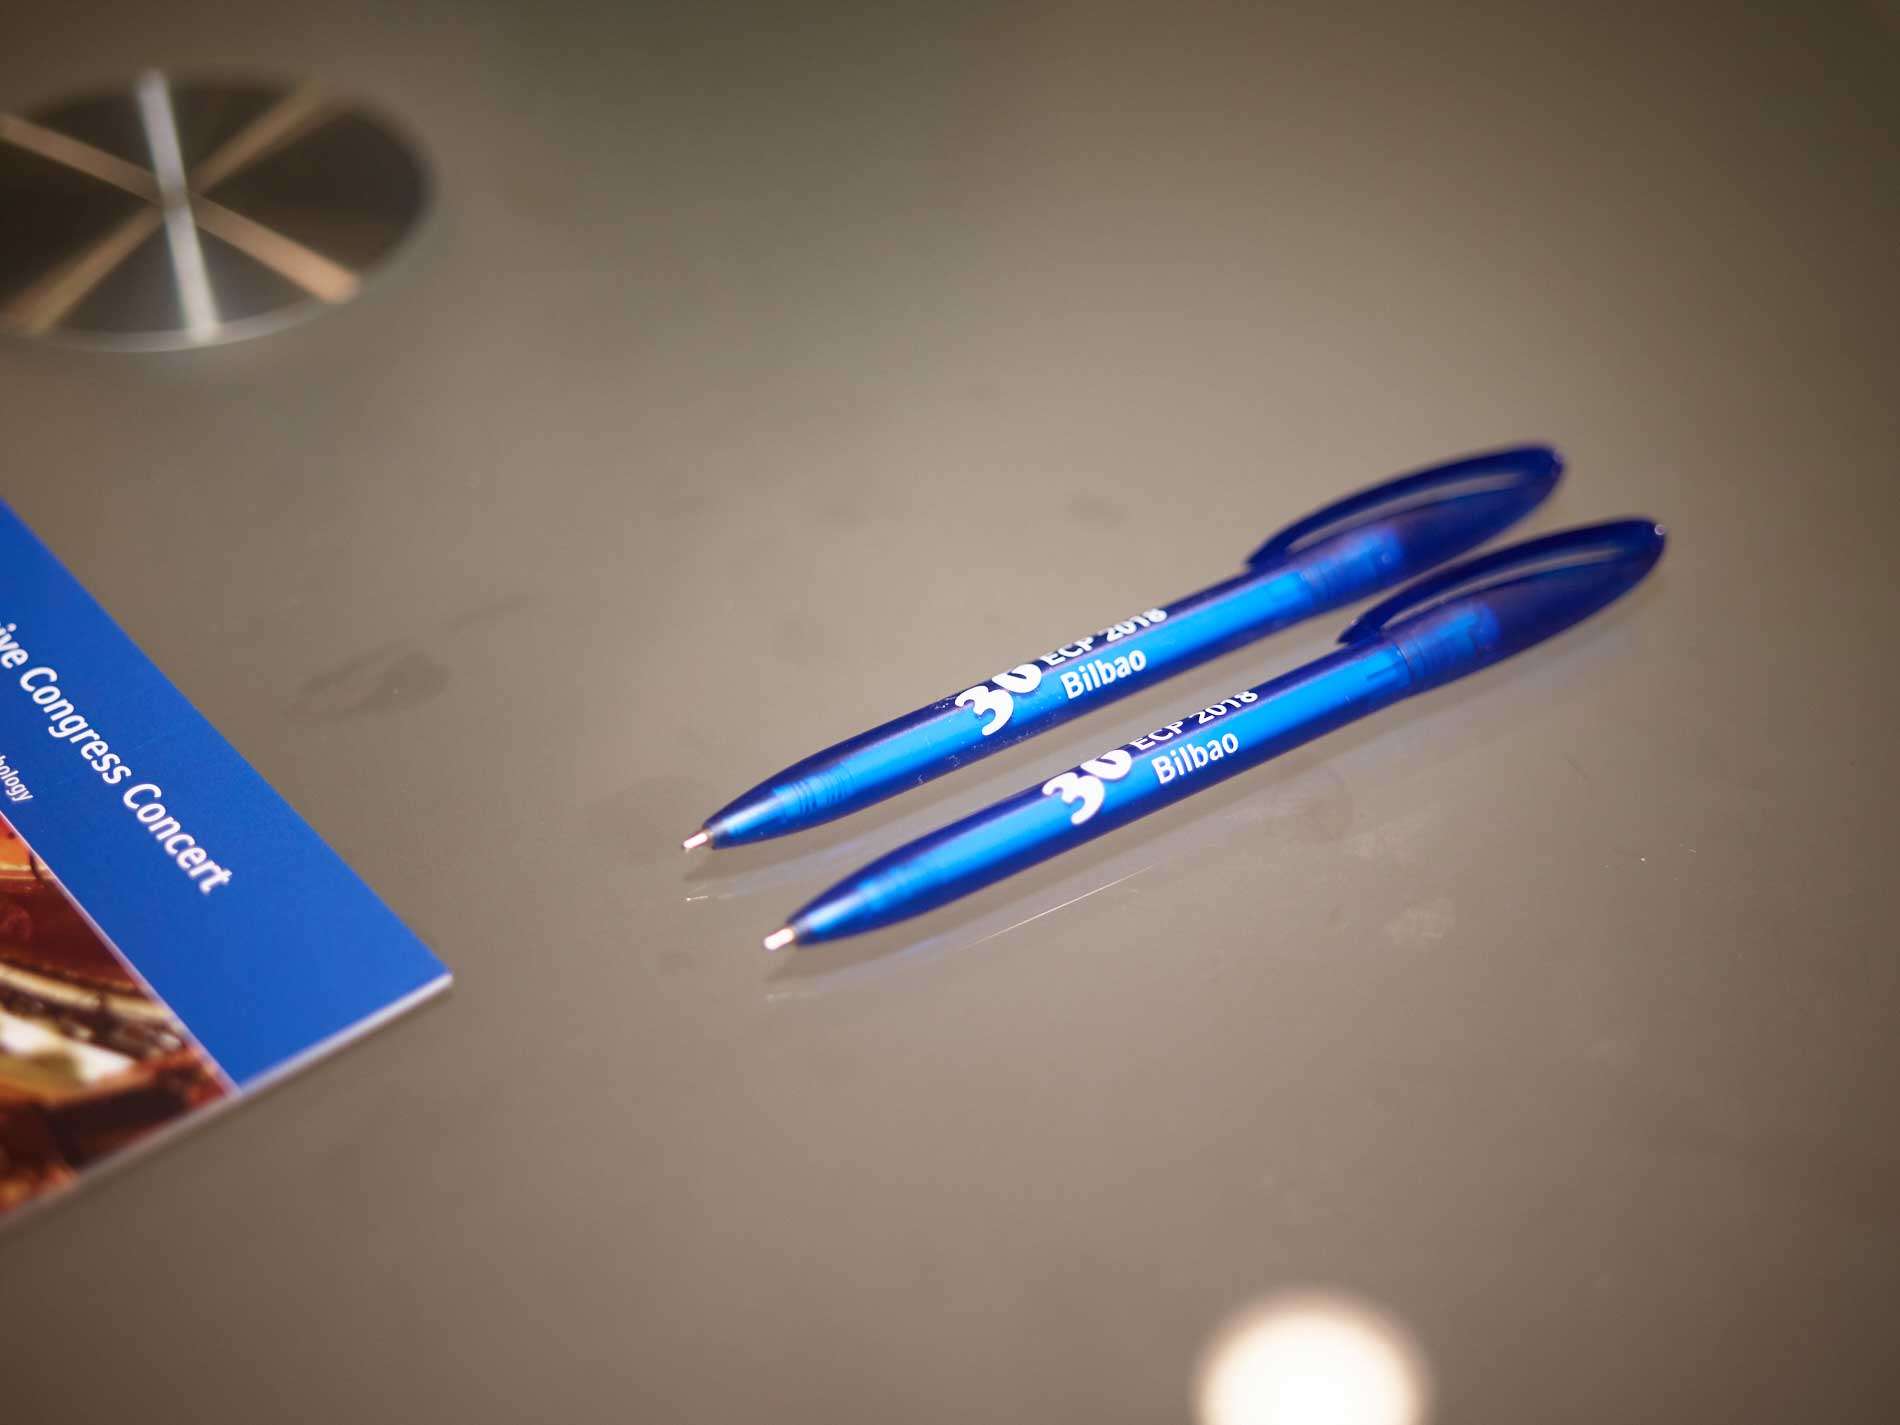 Anniversary branding - A selection of special giveaways and printed materials were produced for the 30th anniversary.